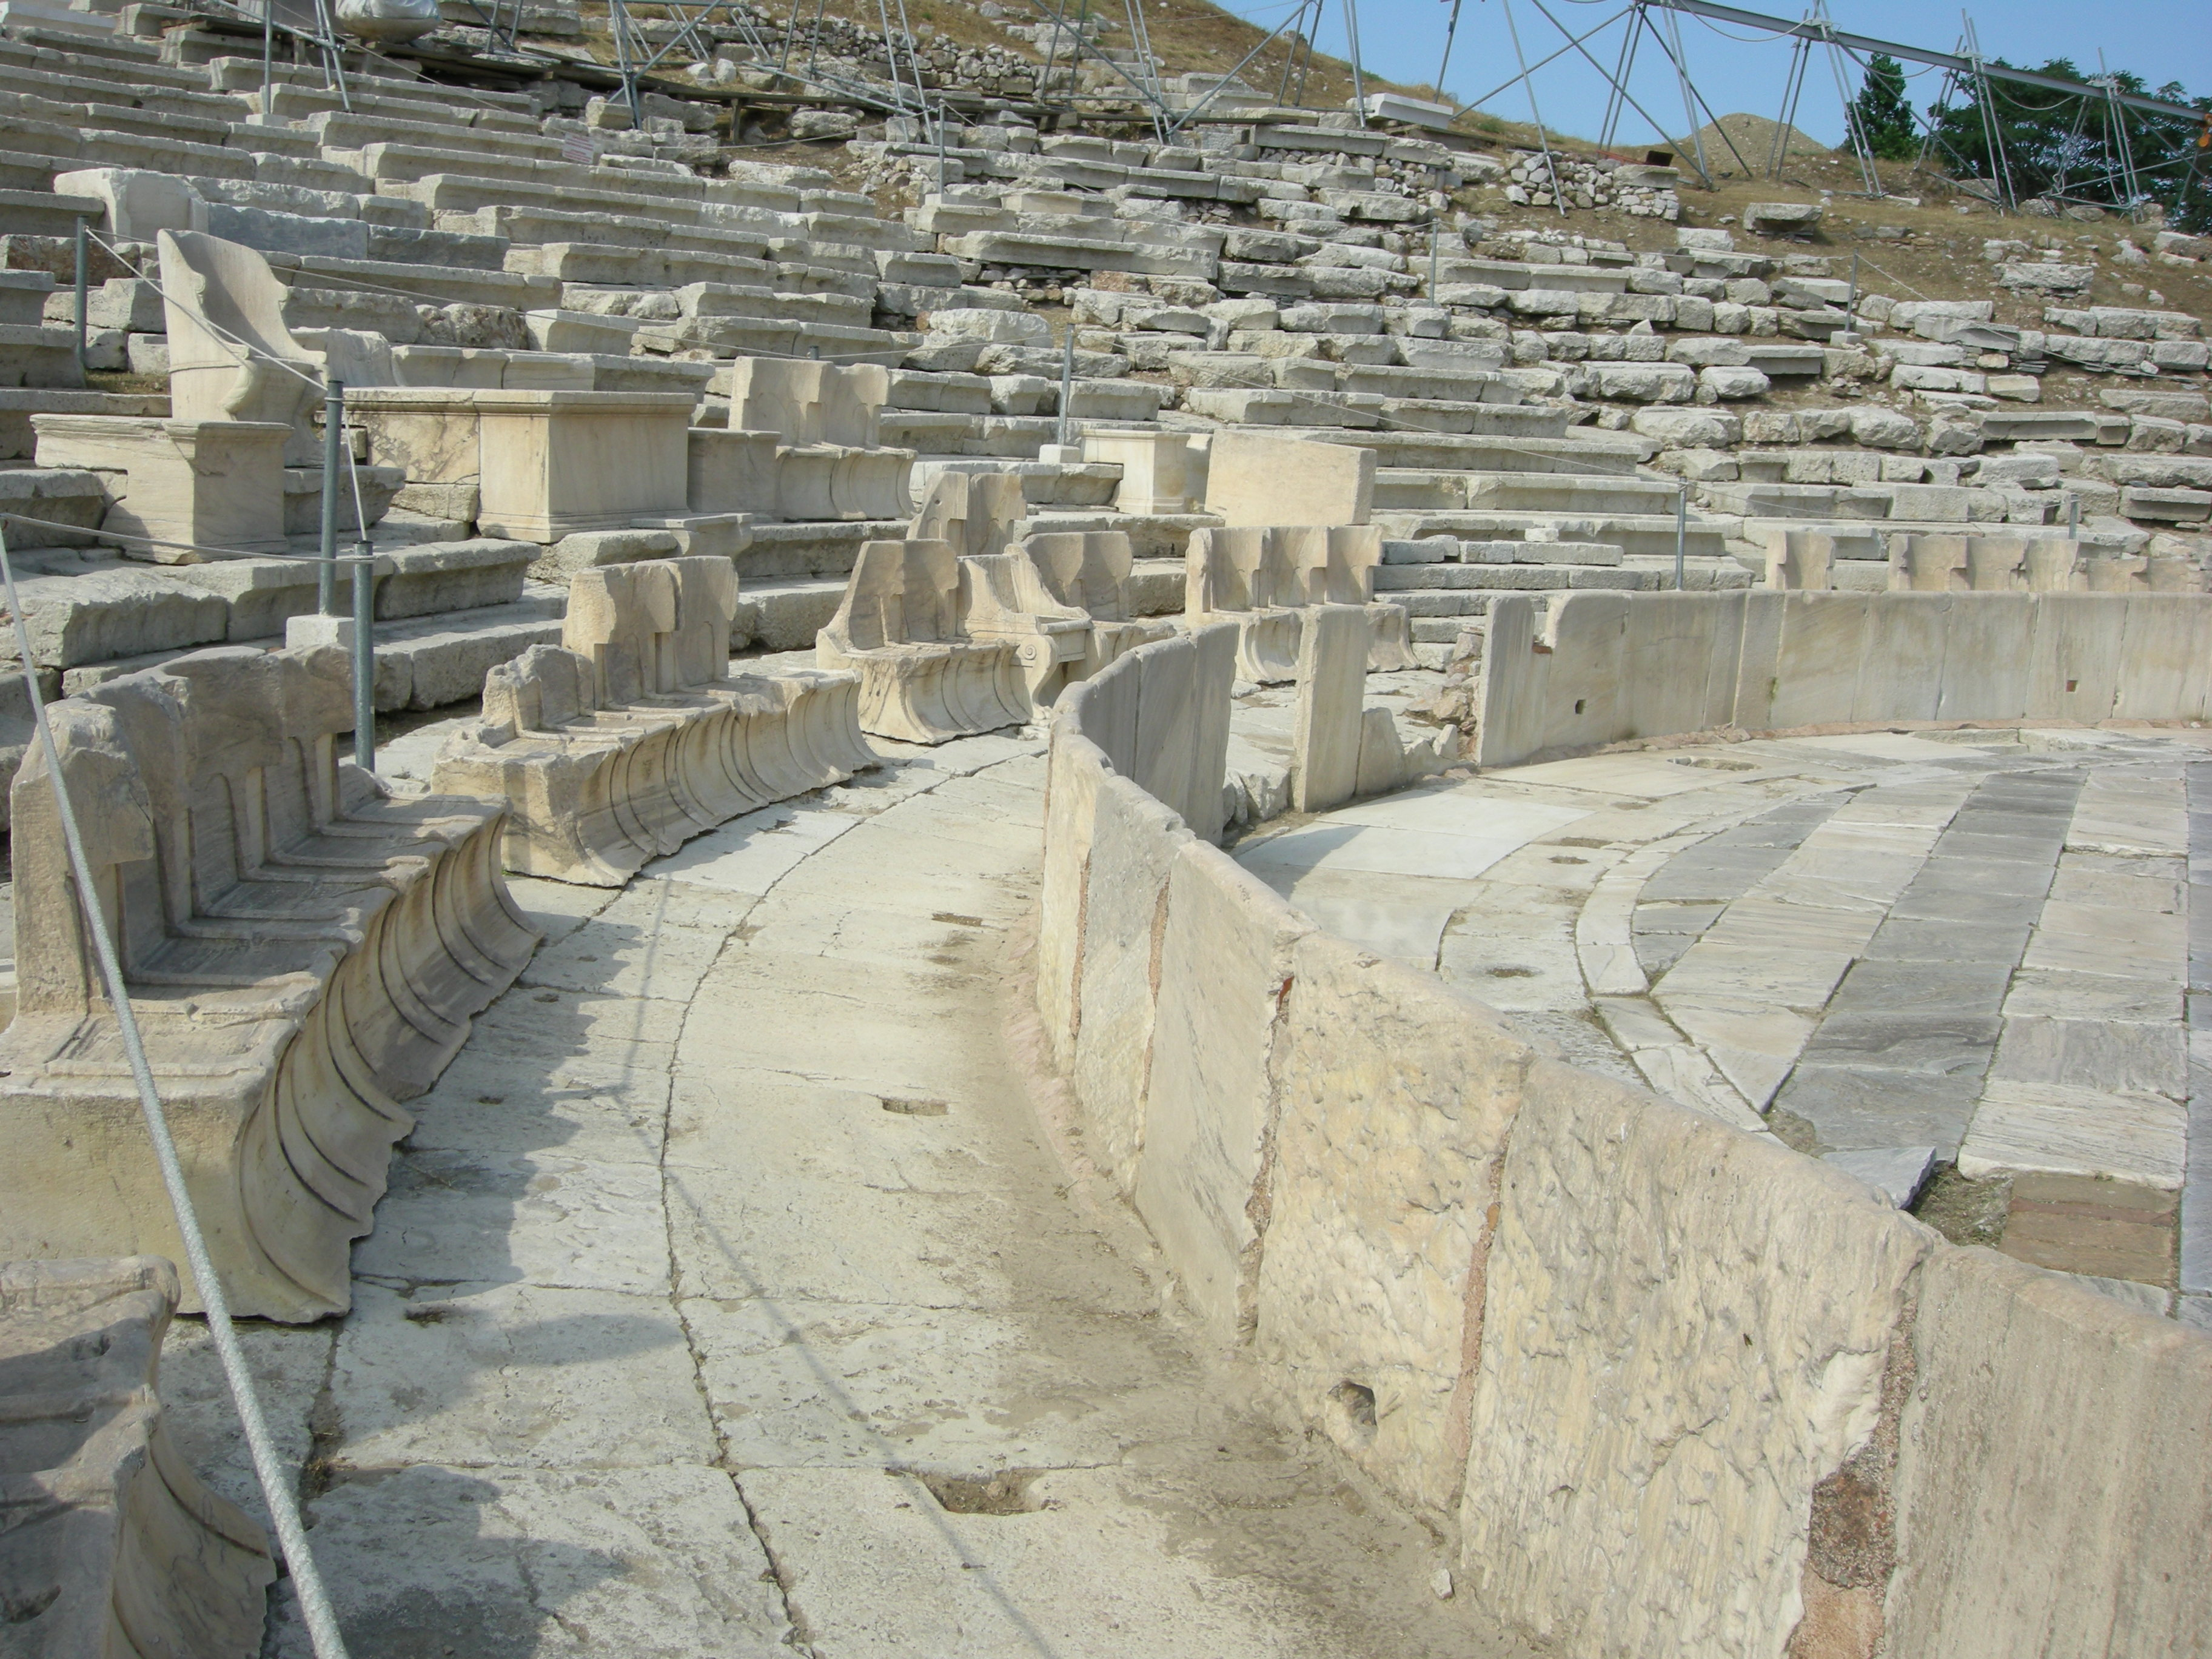 File:Theatre of Dionysus 03.JPG - Wikimedia Commons